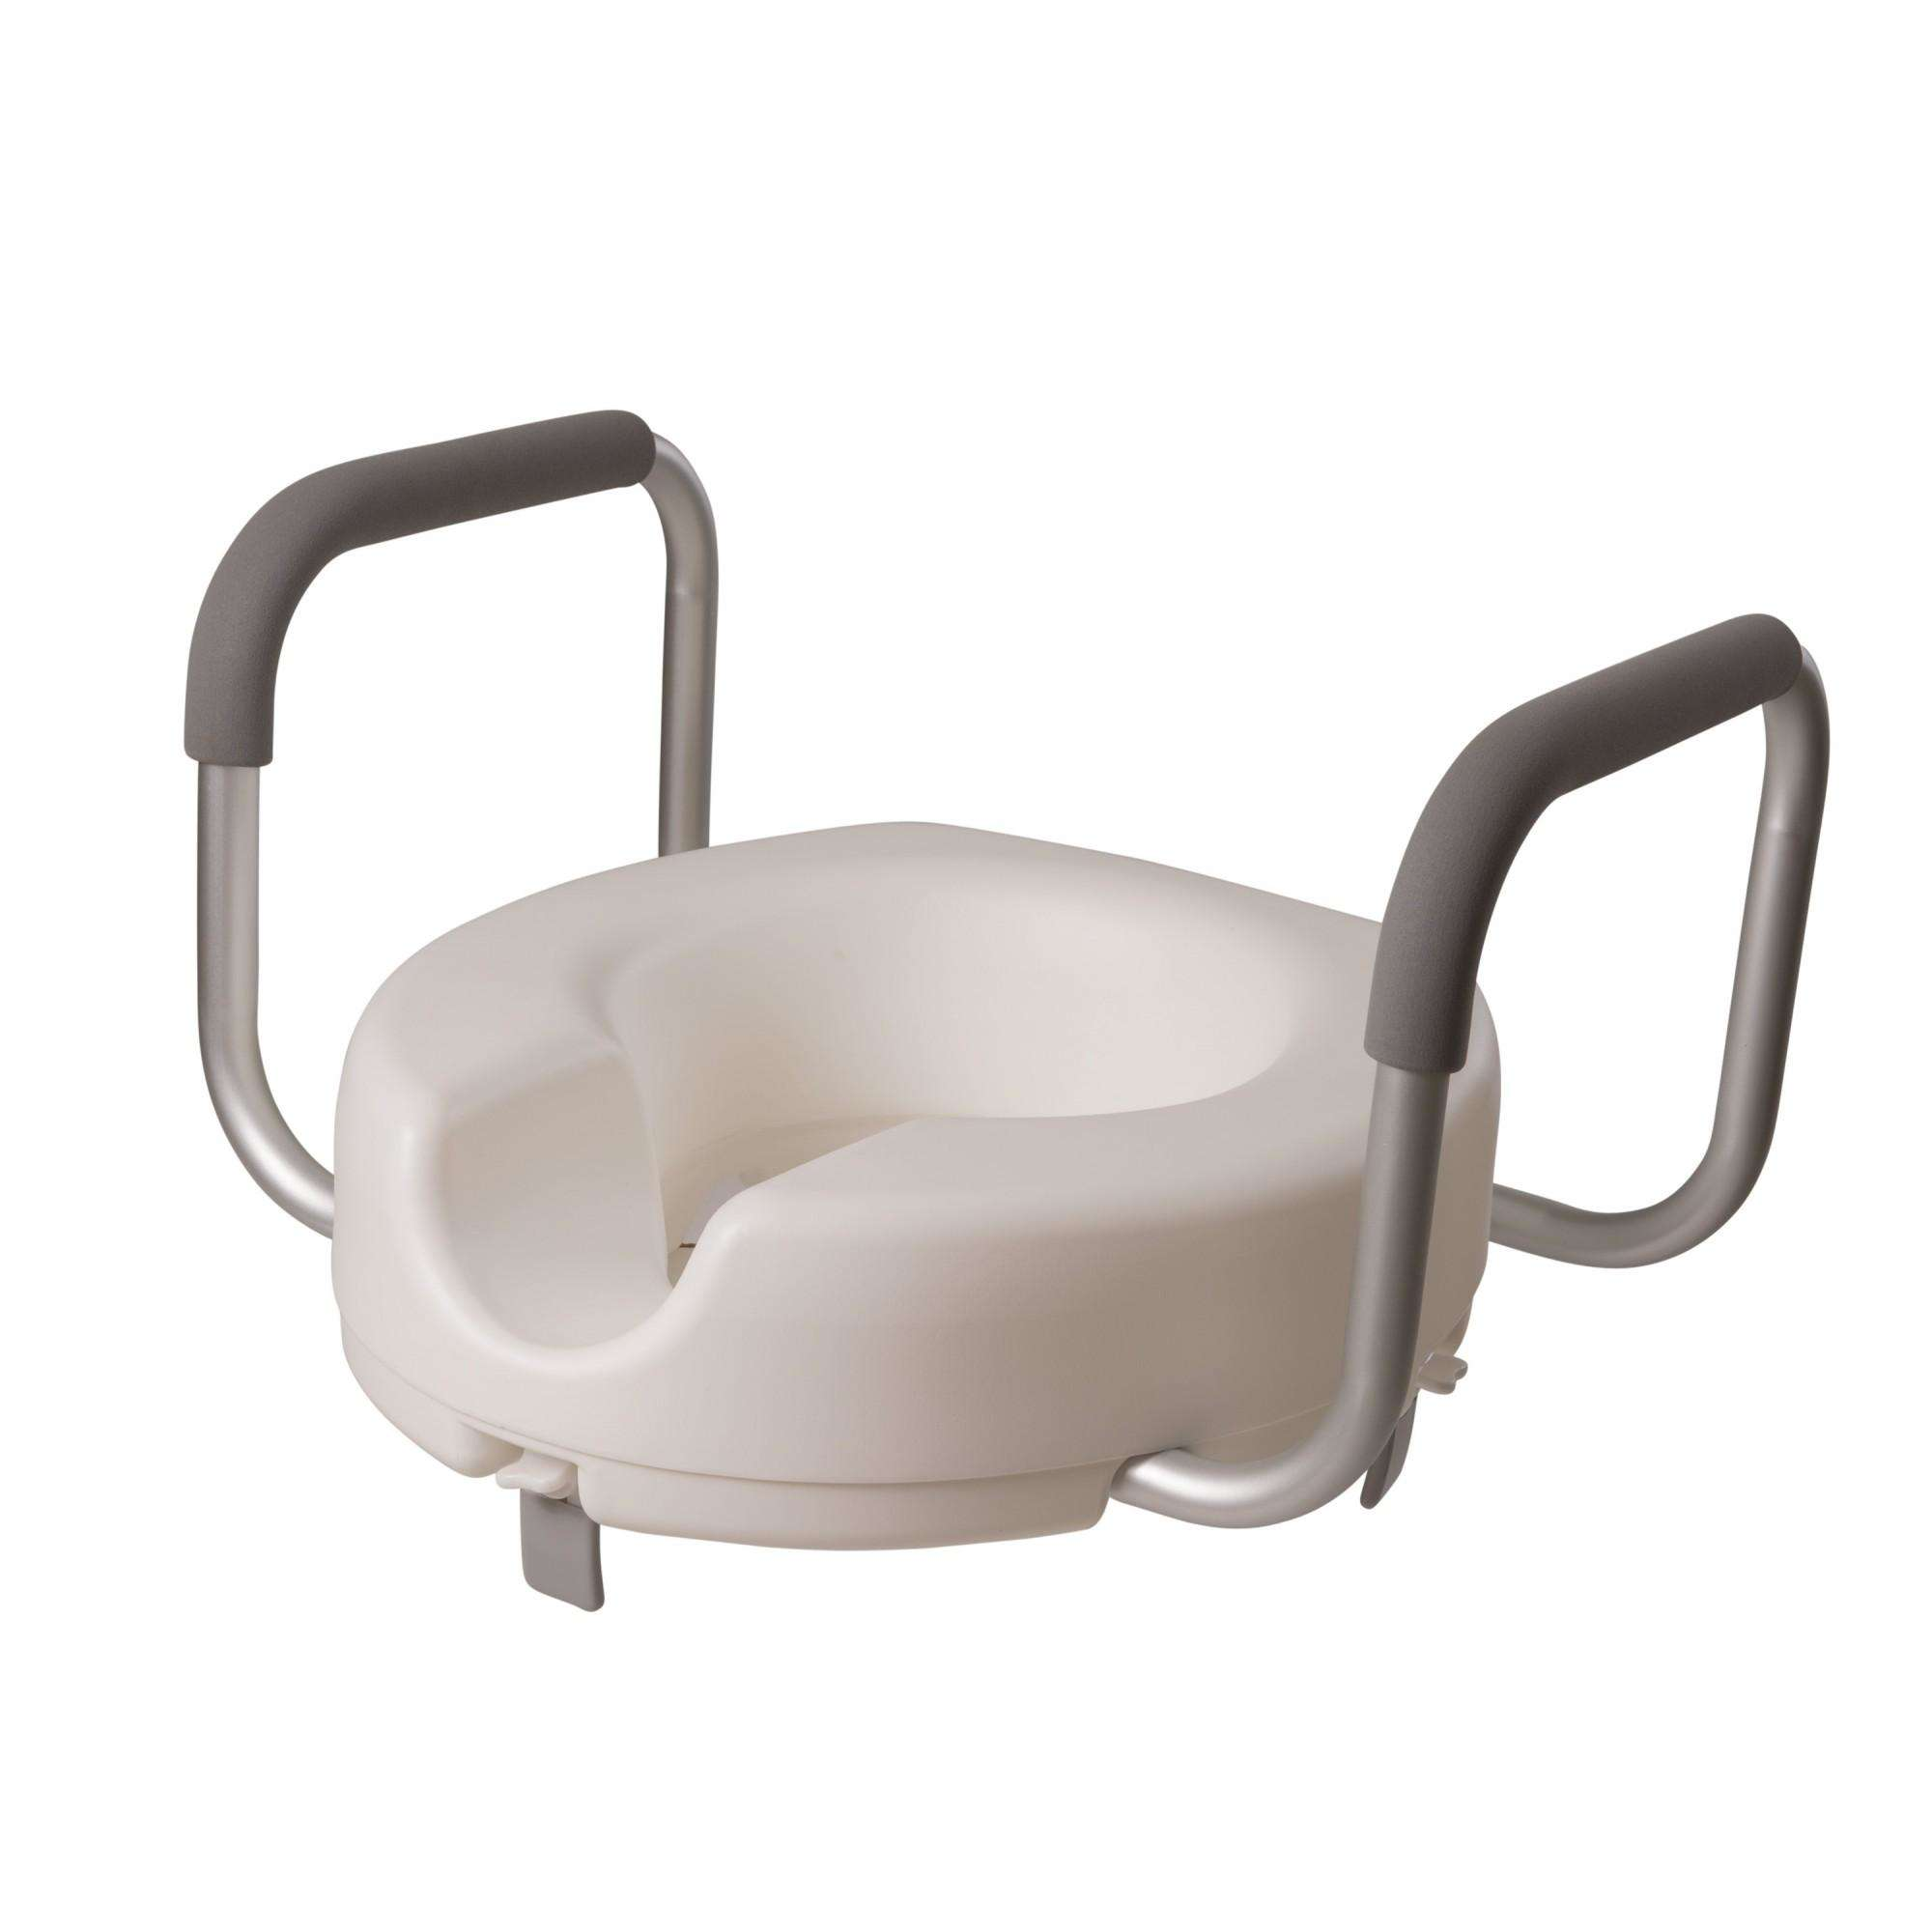 dmi raised toilet seat for standard toilets with arms, handicap